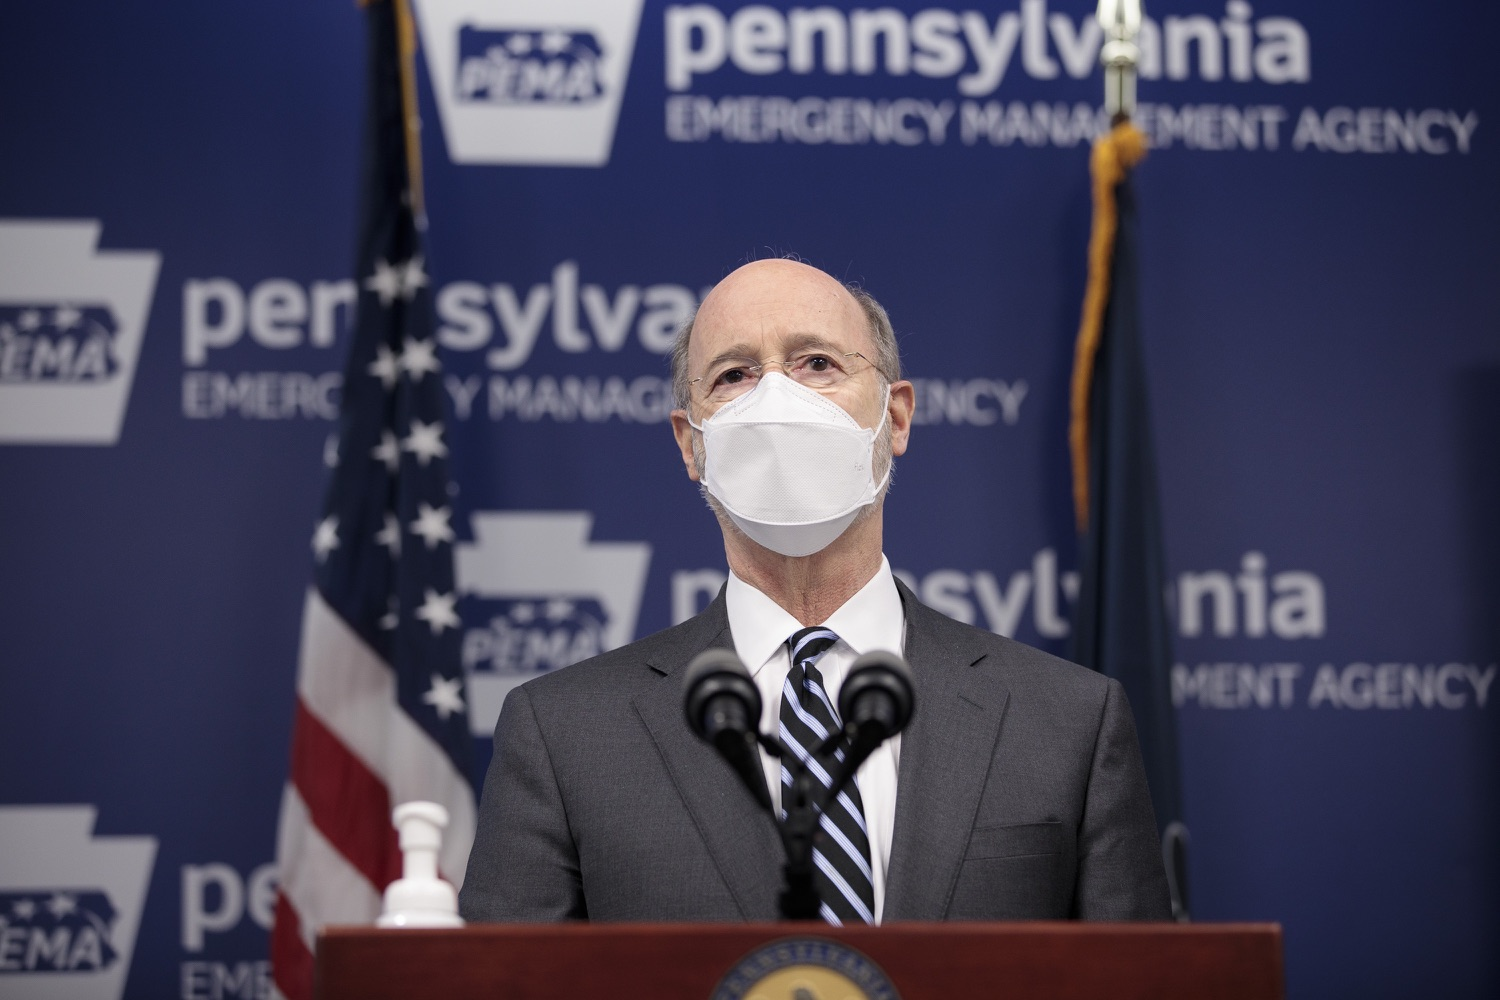 "<a href=""https://filesource.wostreaming.net/commonwealthofpa/photo/18521_gov_minimumWage_dz_03.jpg"" target=""_blank"">⇣ Download Photo<br></a>Pennsylvania Governor Tom Wolf answers questions from the press.  Building on his plan to cut personal income taxes for 2.8 million Pennsylvanians, Governor Tom Wolf wants to help thousands of essential workers struggling to buy food and avoid homelessness because of poverty wages. Today, the governor renewed his call to increase the states embarrassingly low minimum wage to $12 per hour on July 1, with annual increases of $0.50 until reaching $15 per hour on July 1, 2027. FEBRUARY 09, 2021 - HARRISBURG, PA"